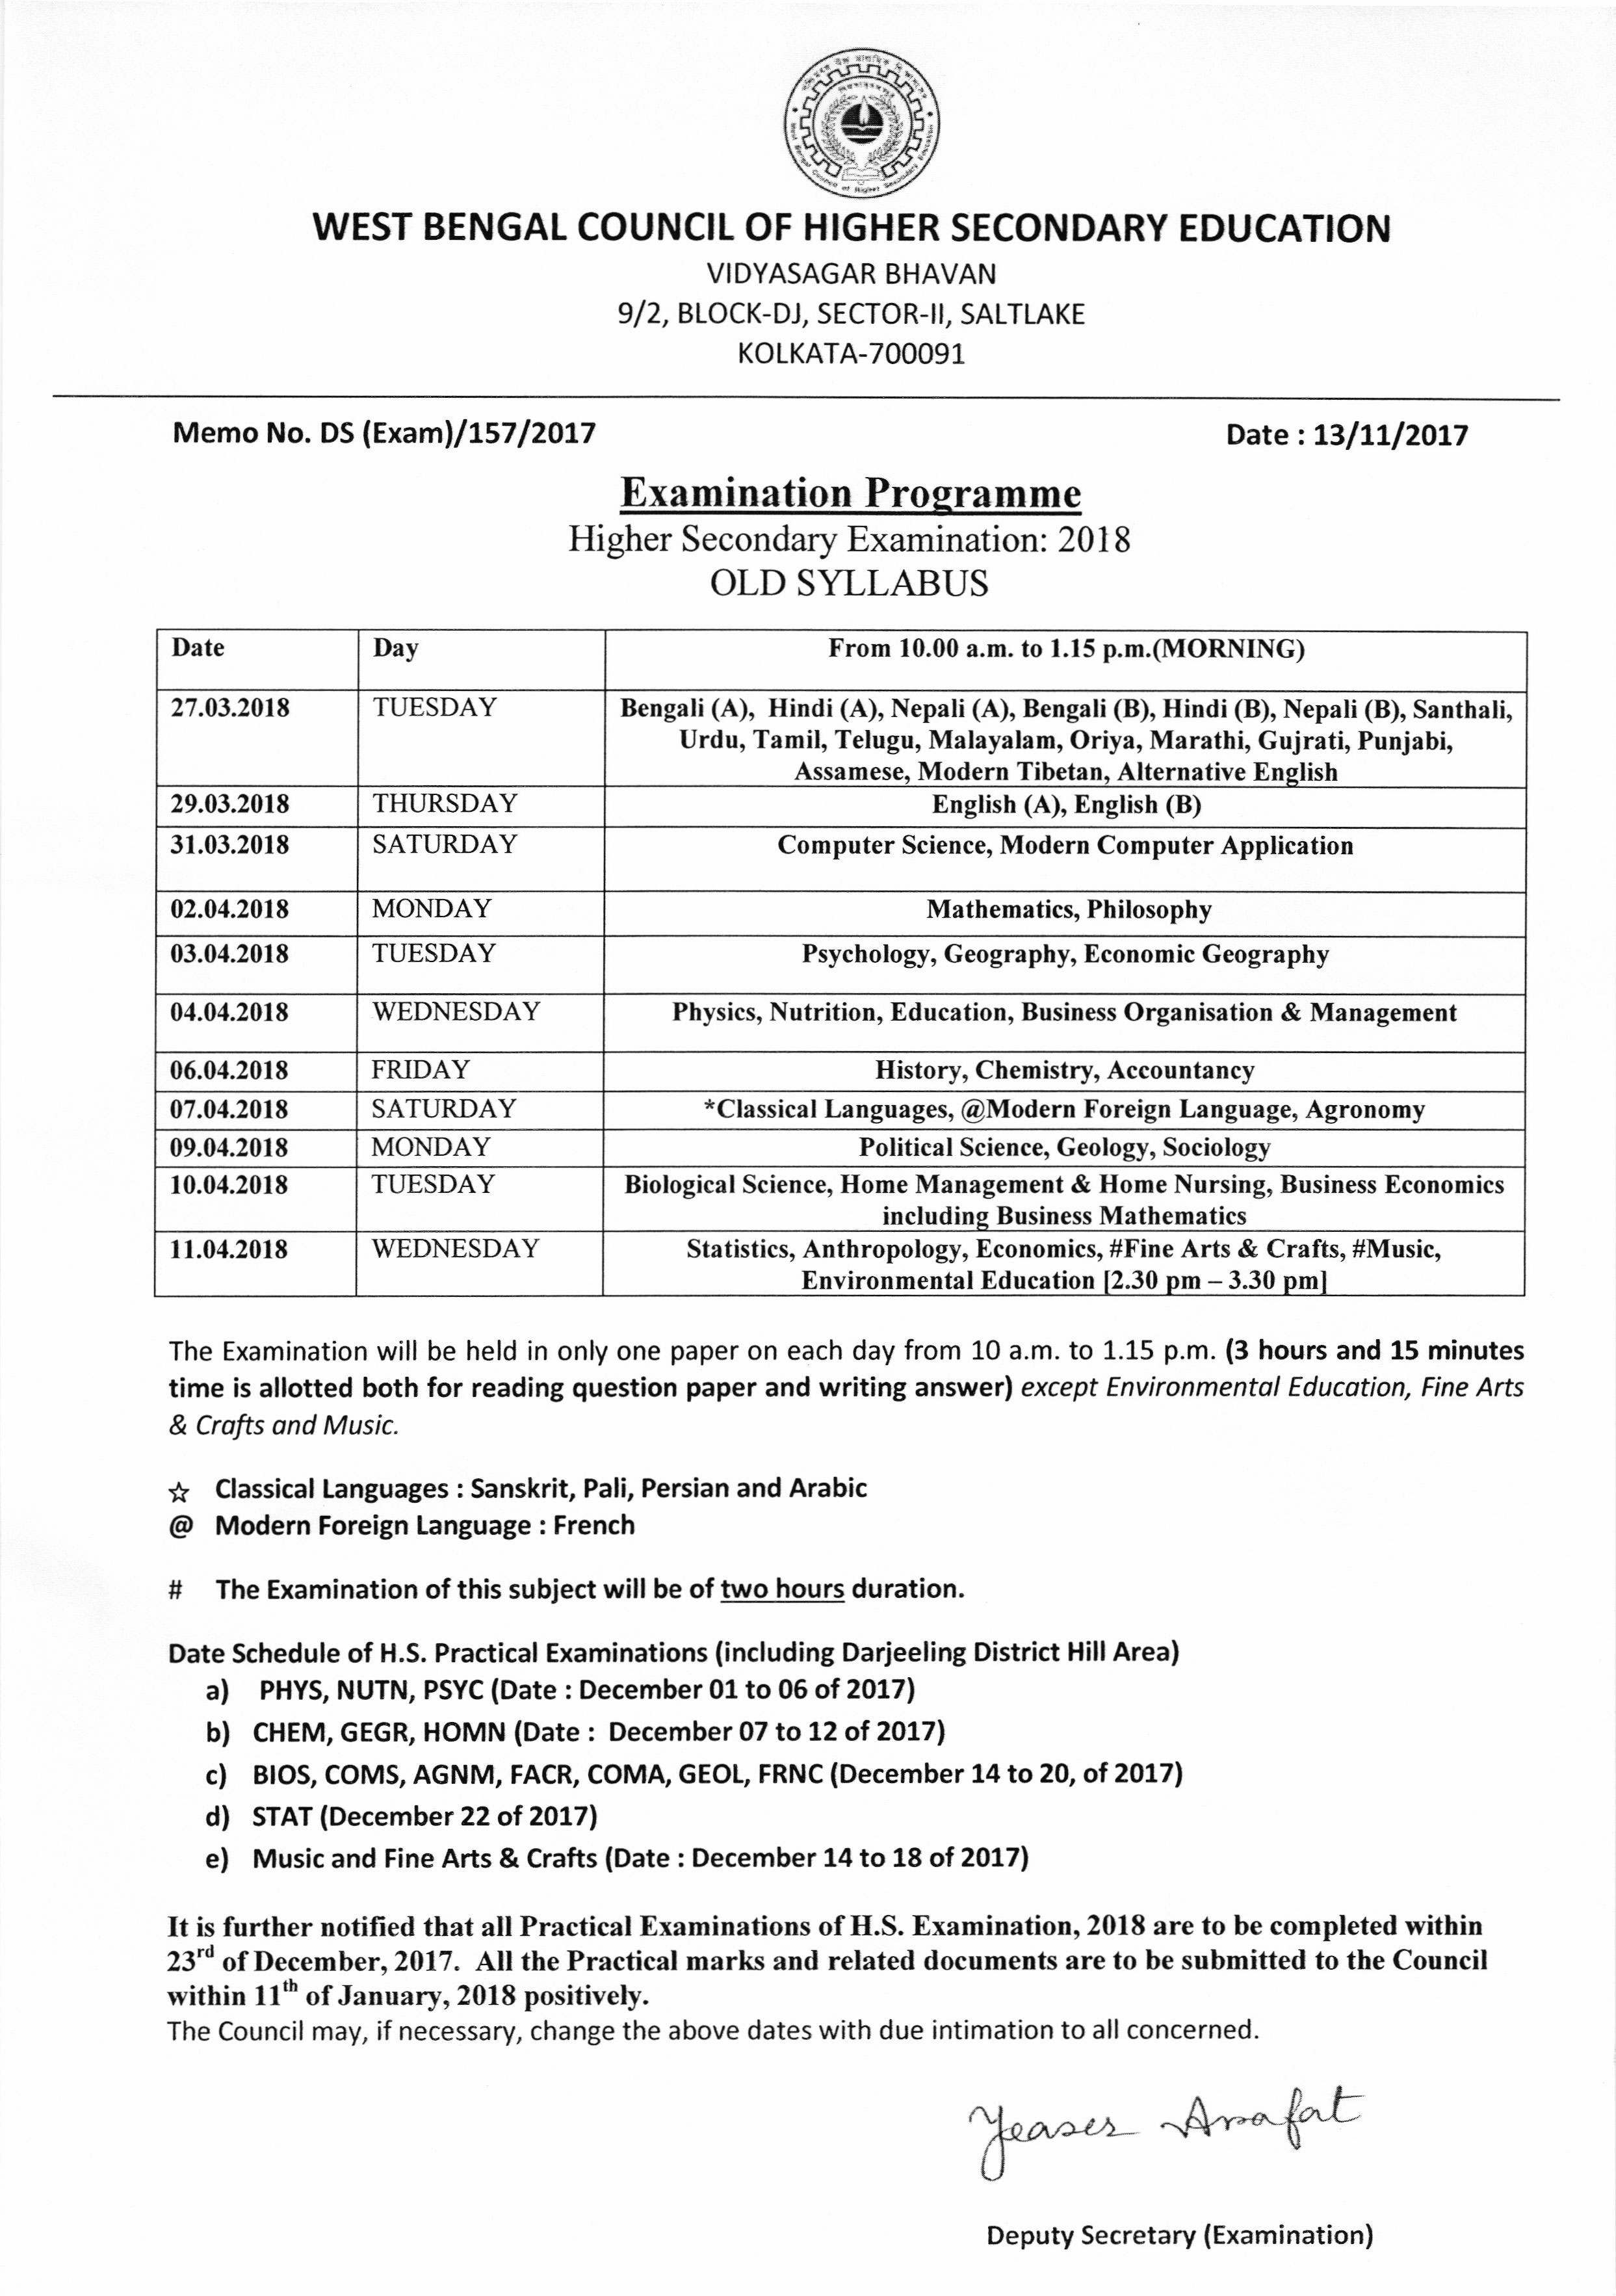 Higher Secondary Old Syllabus Routine (2018)